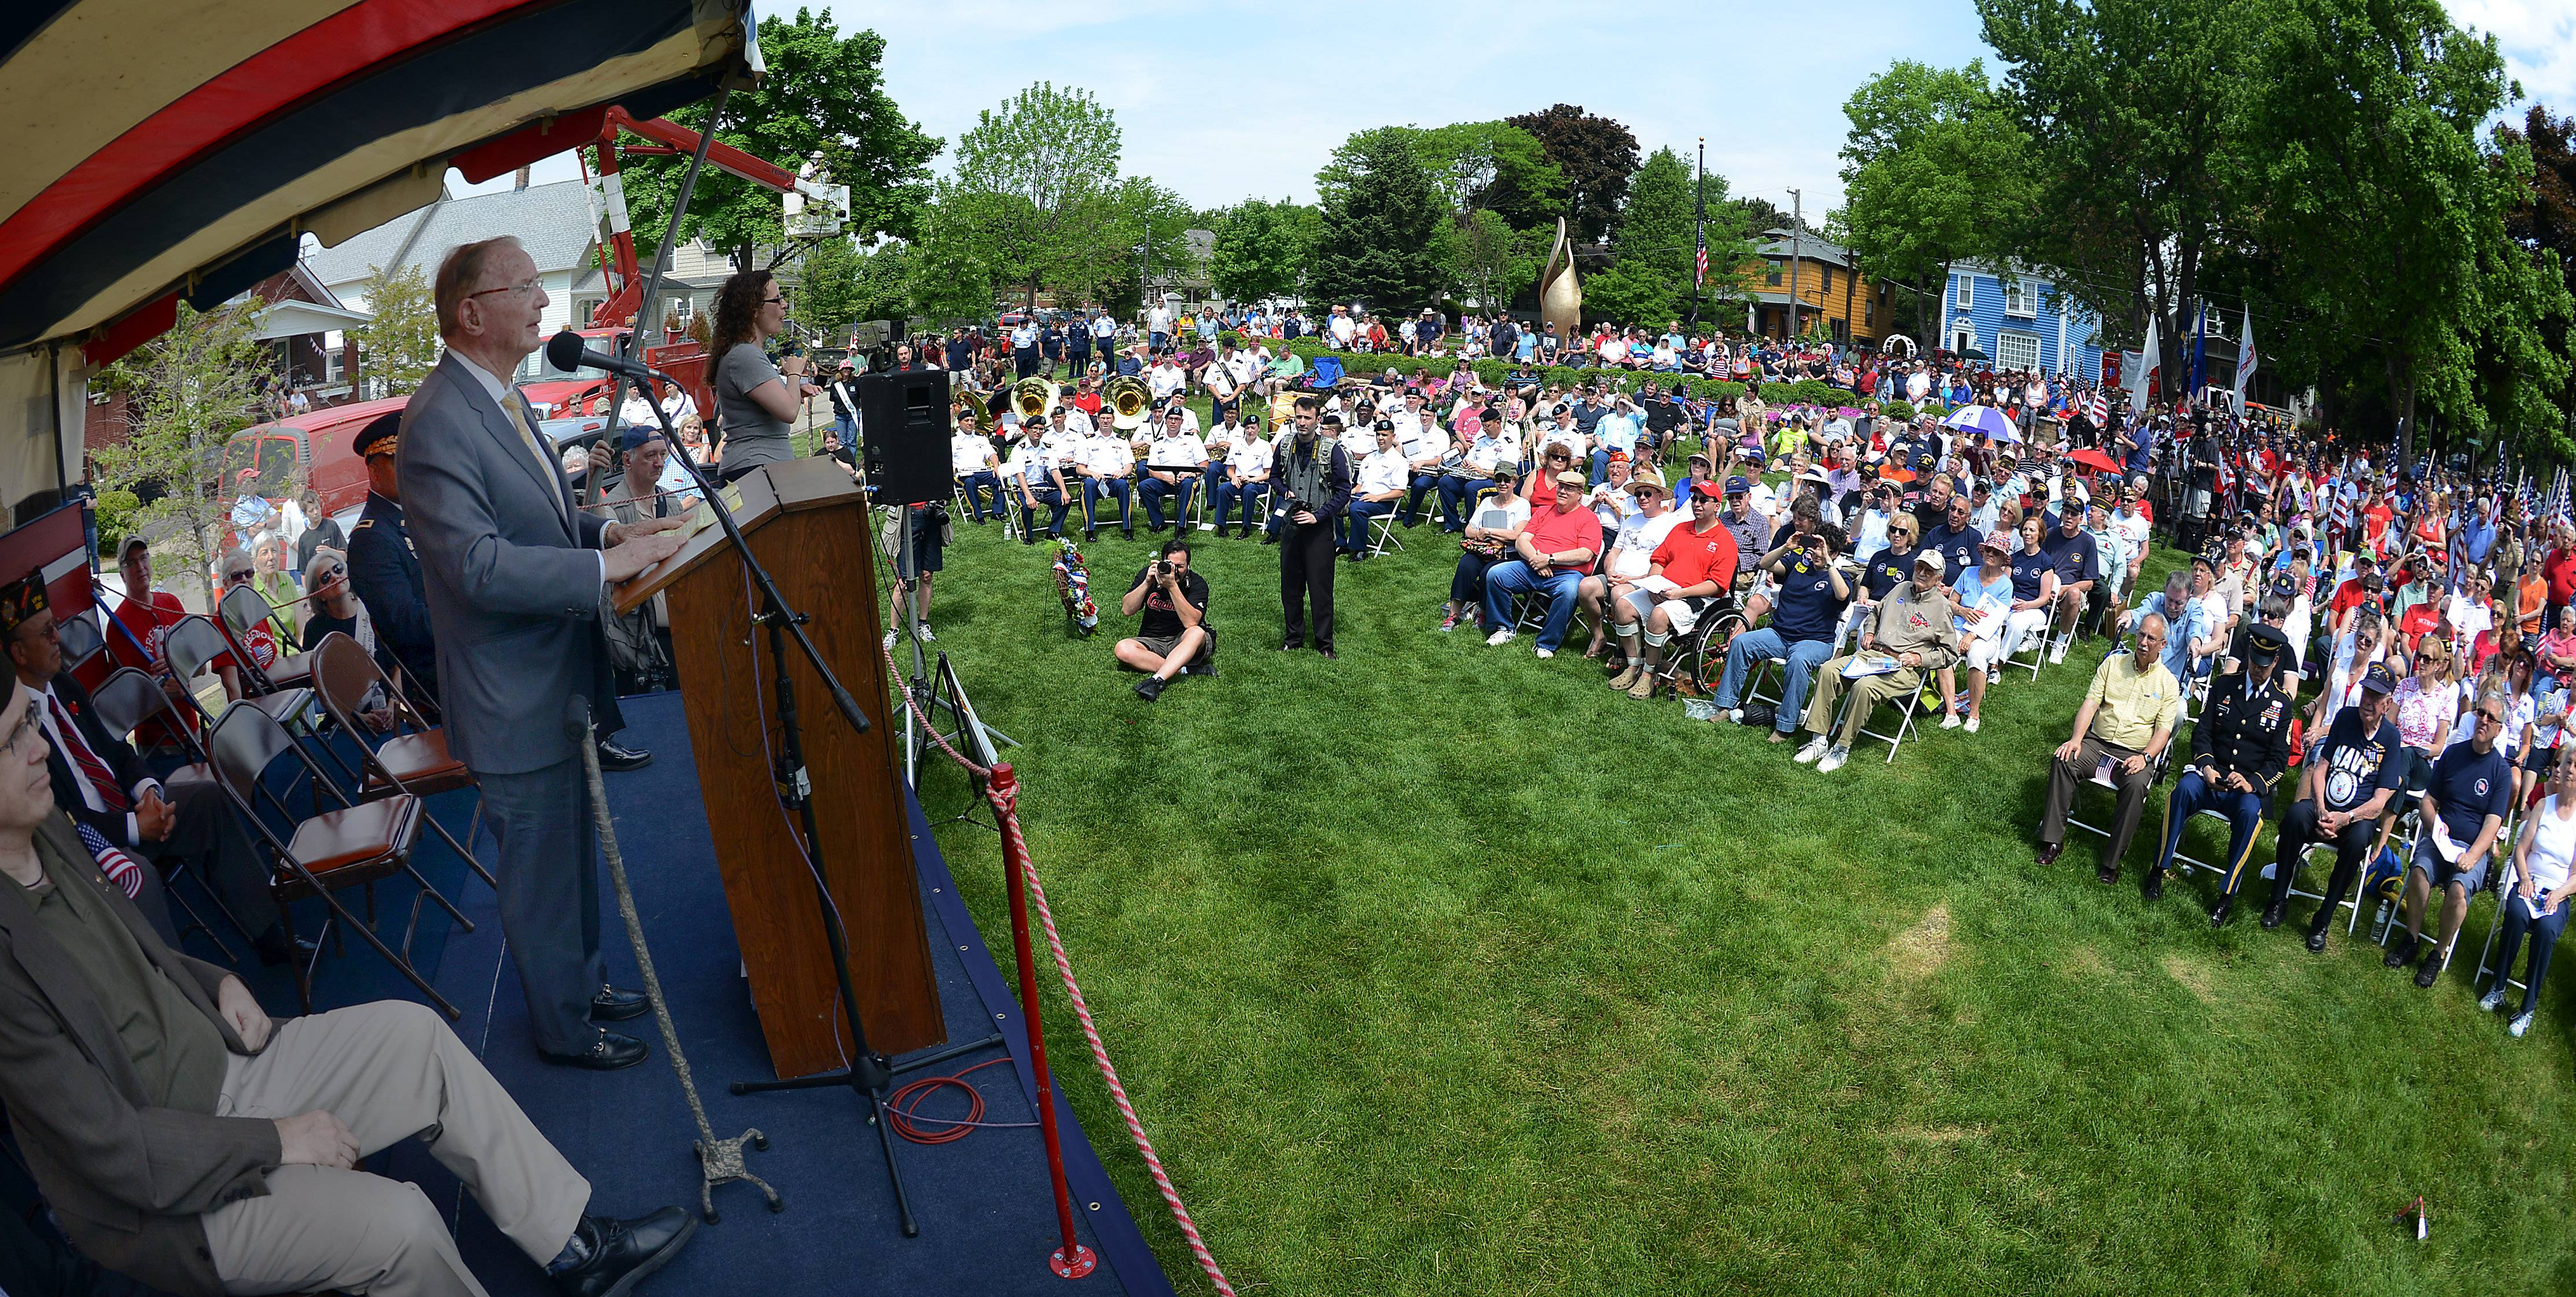 Richard Duchossois, grand marshall of the parade and World War II veteran speaks to his fellow veterans at the Arlington Heights Memorial Day ceremony on Monday.